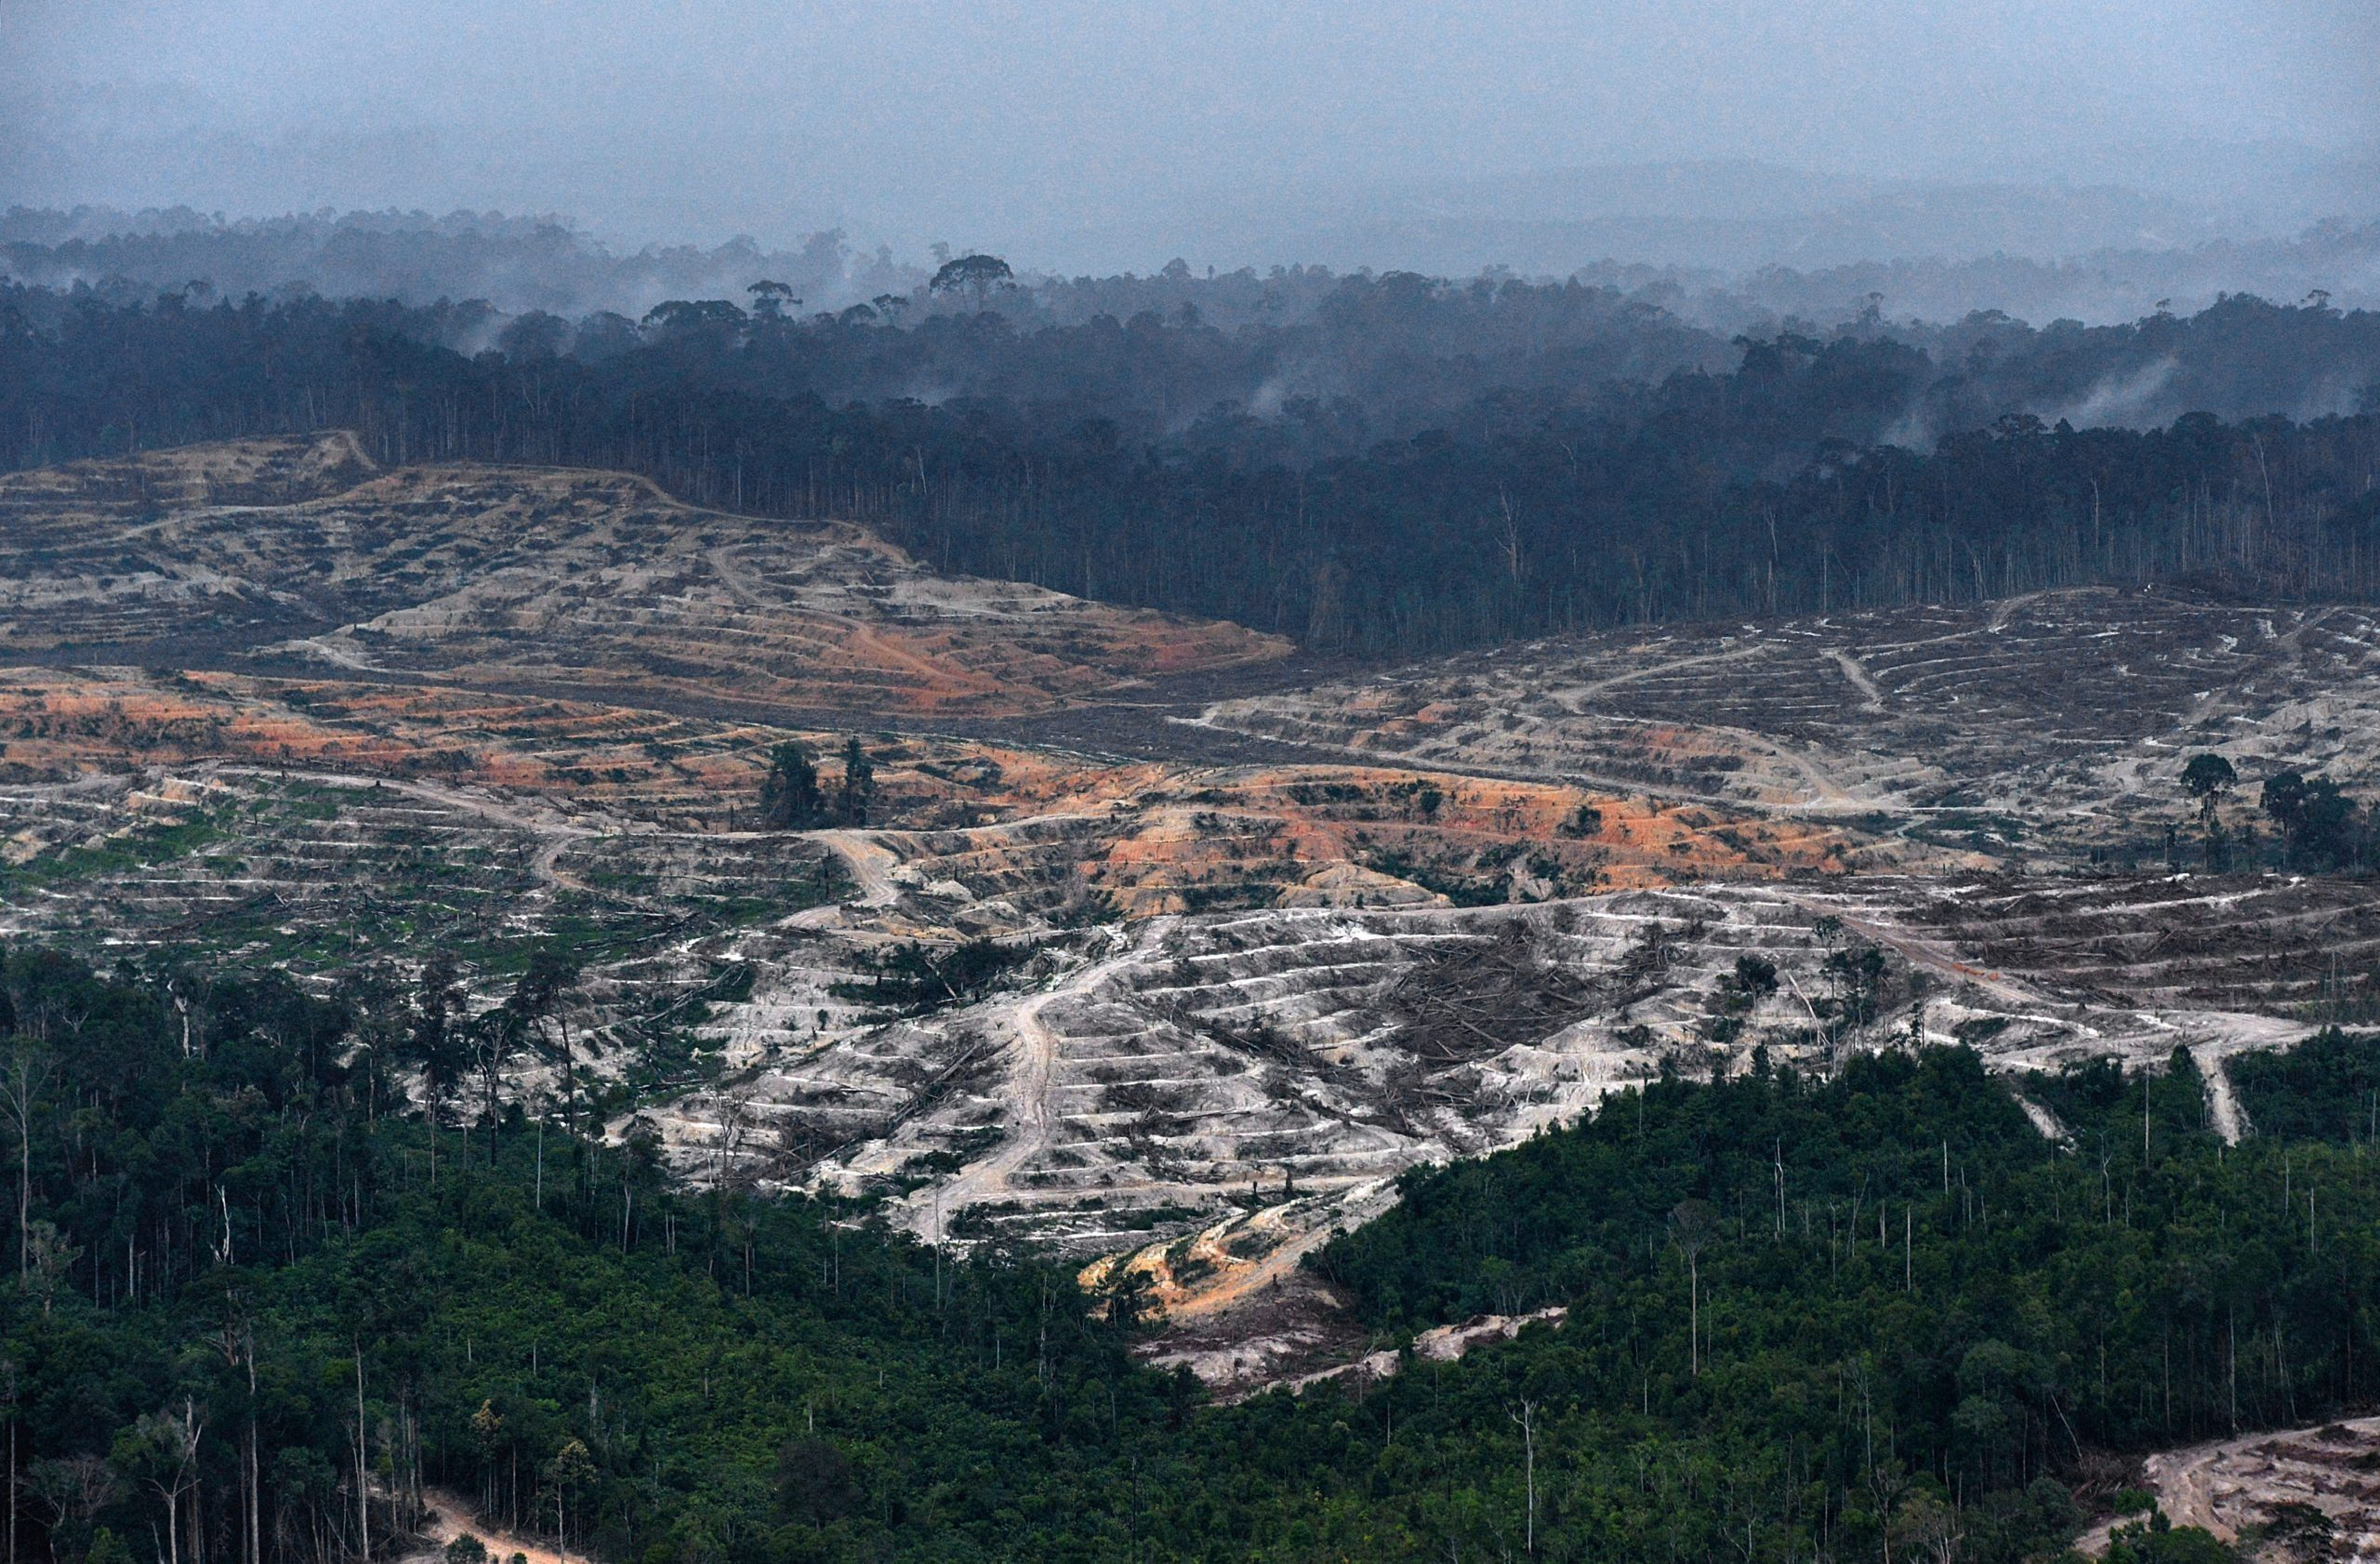 INDONESIA-US-ENVIRONMENT-FORESTS-COMPANY-PROCTER